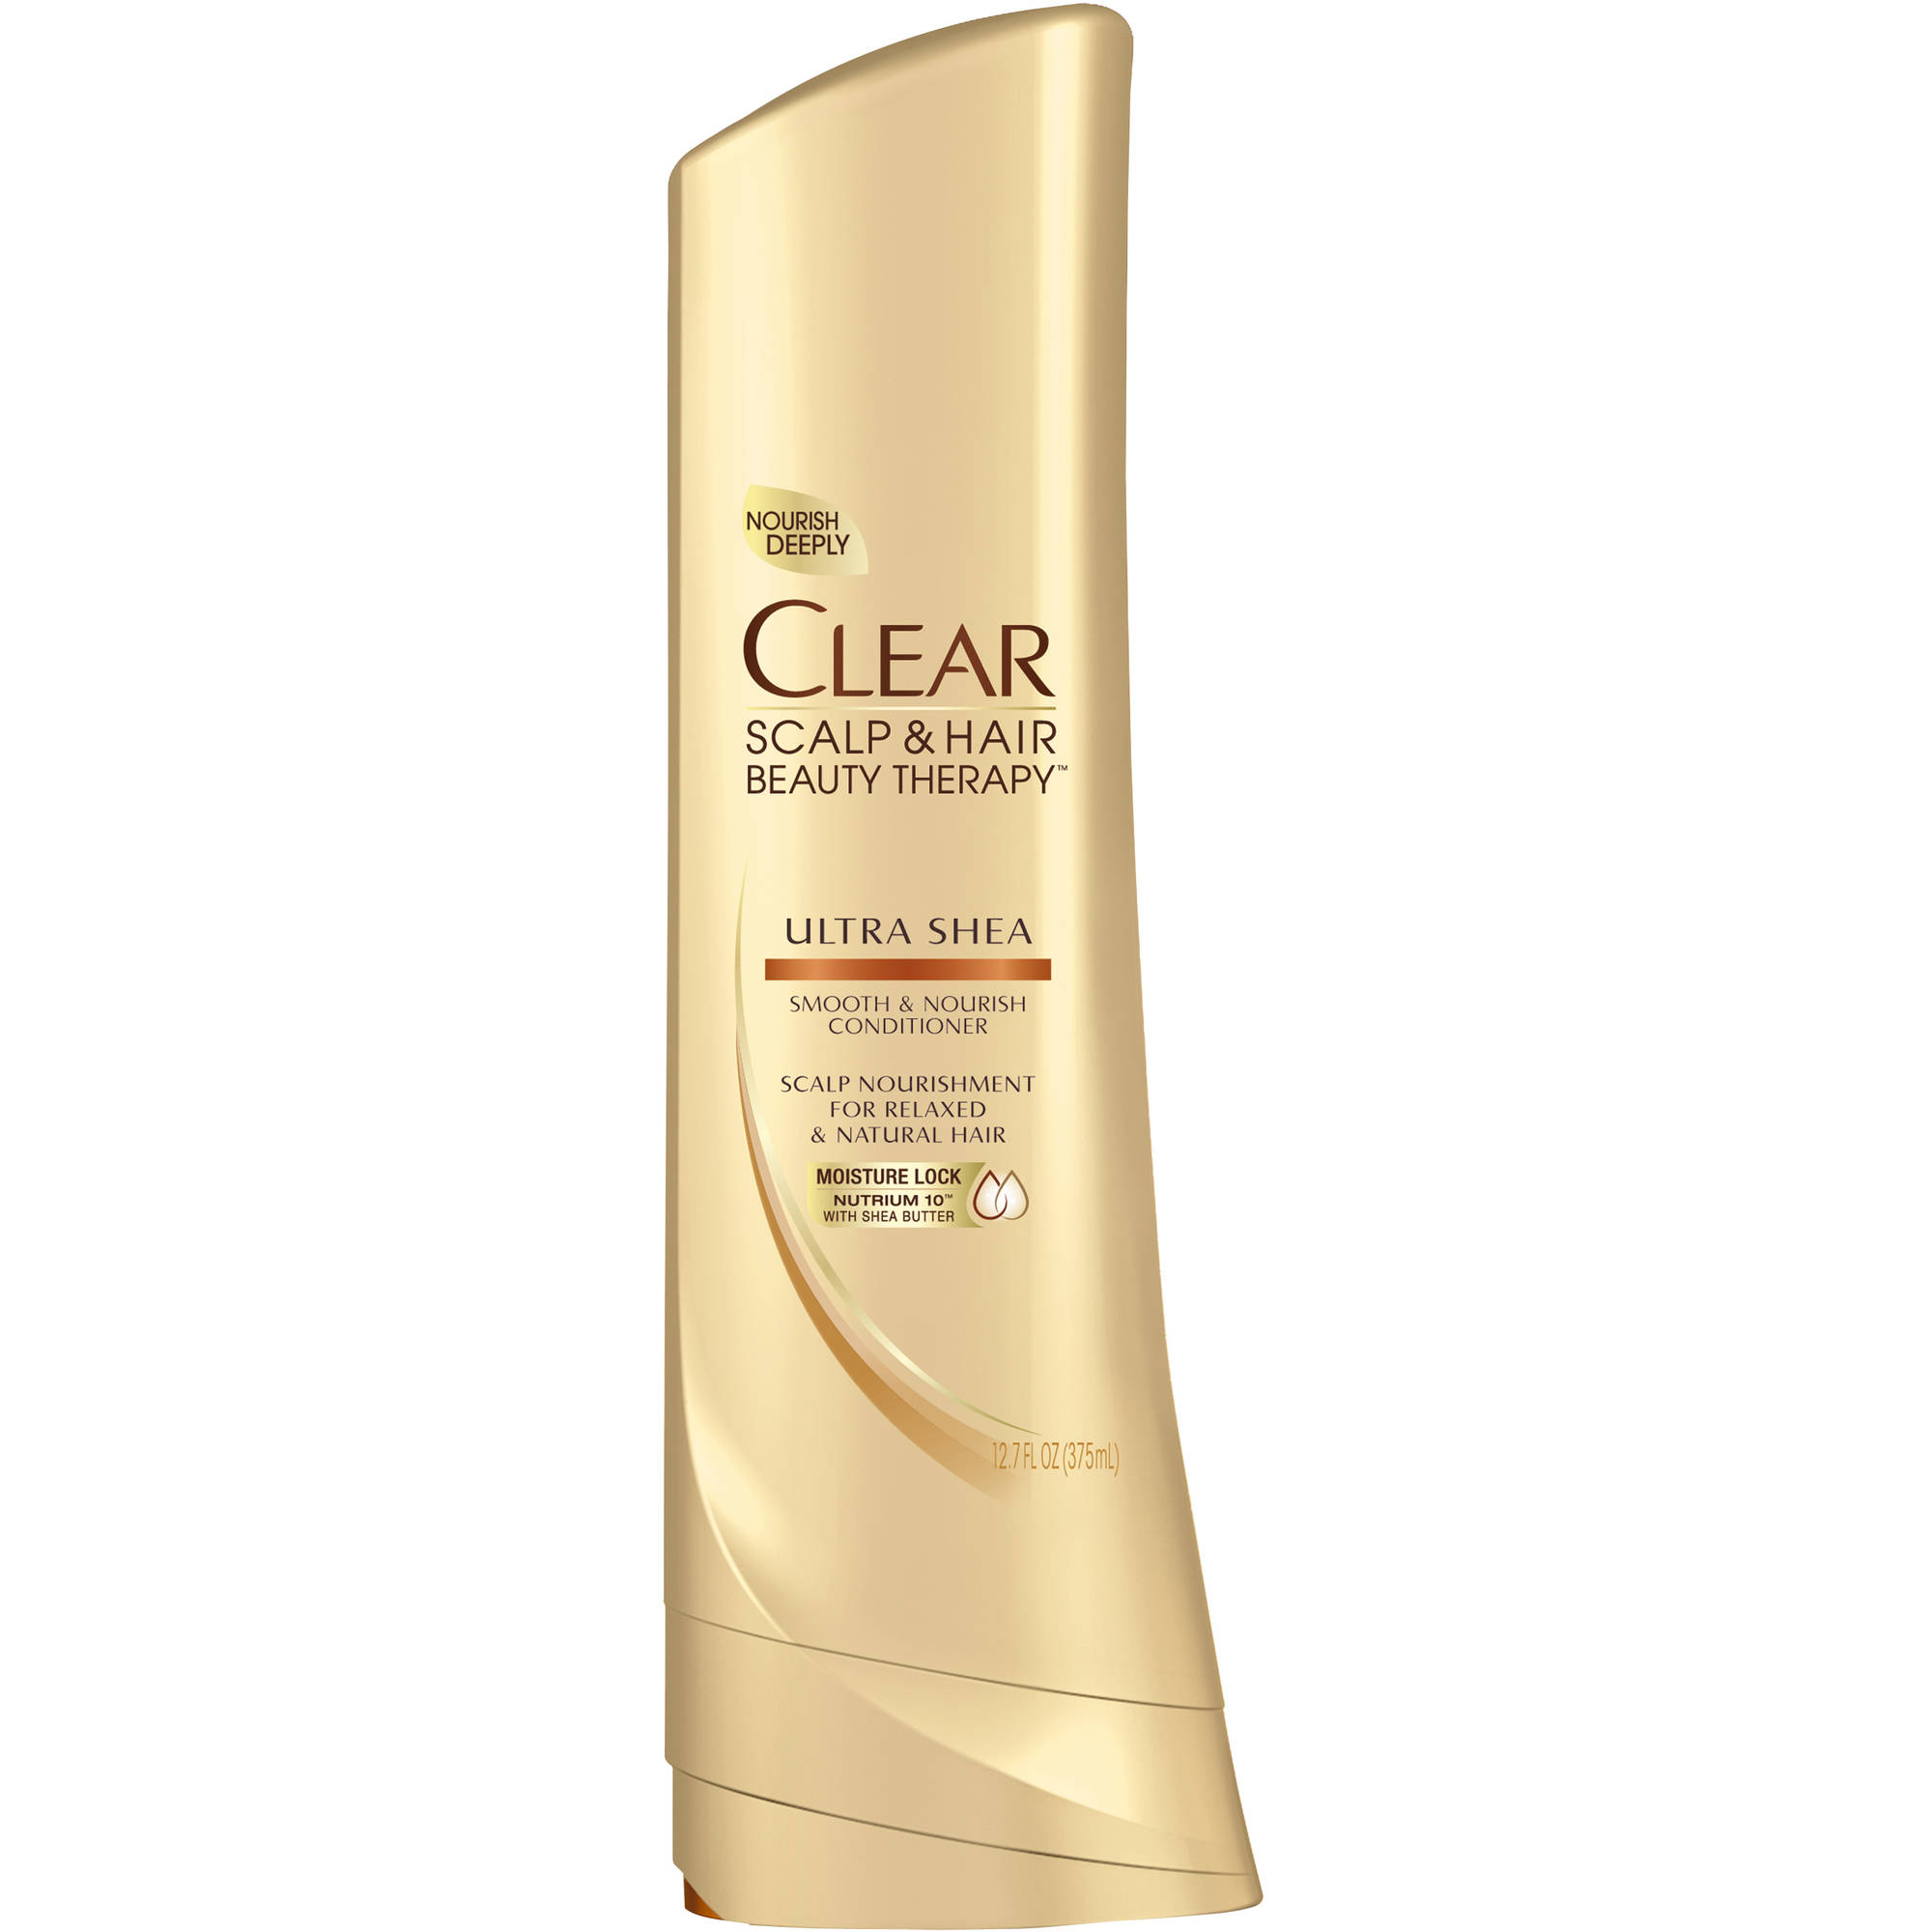 Clear Ultra Shea Conditioner, 12.7 oz